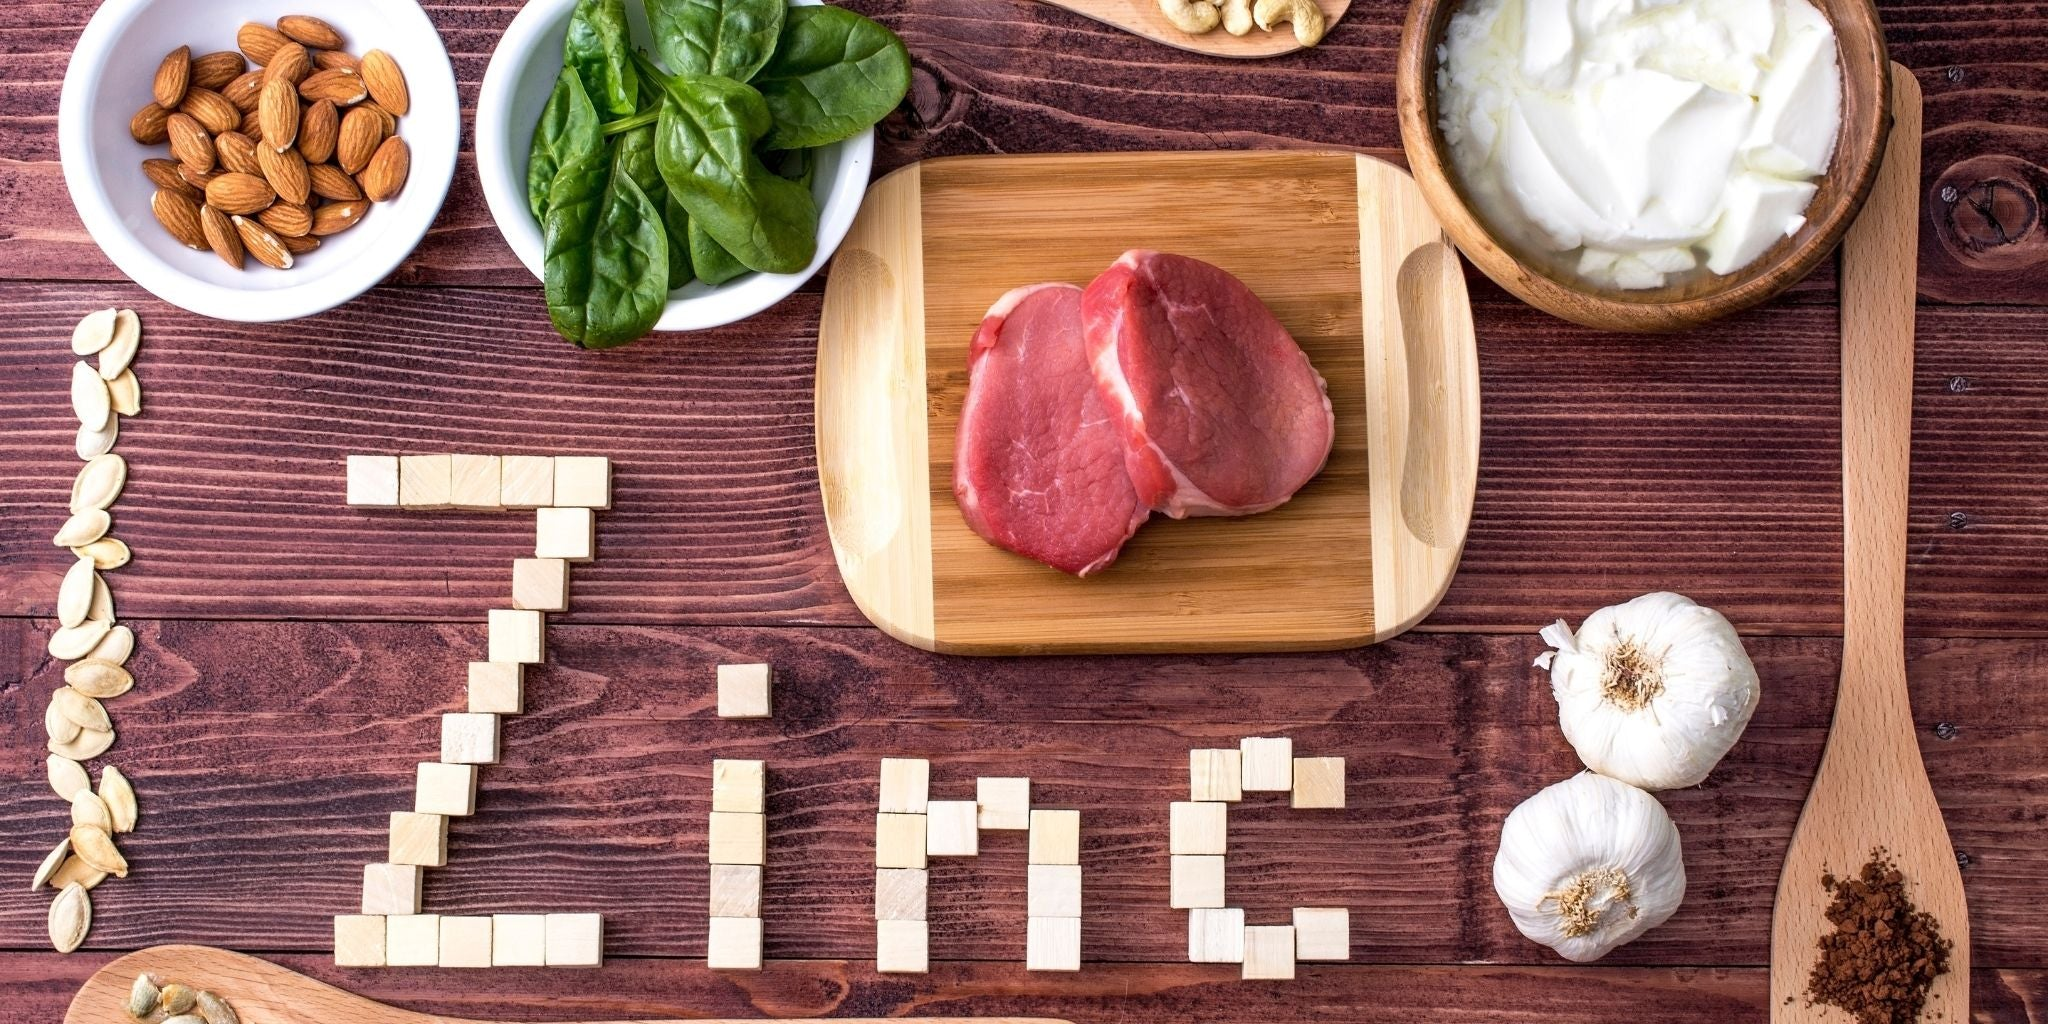 Zinc Deficiency: How to Spot it and Fix it